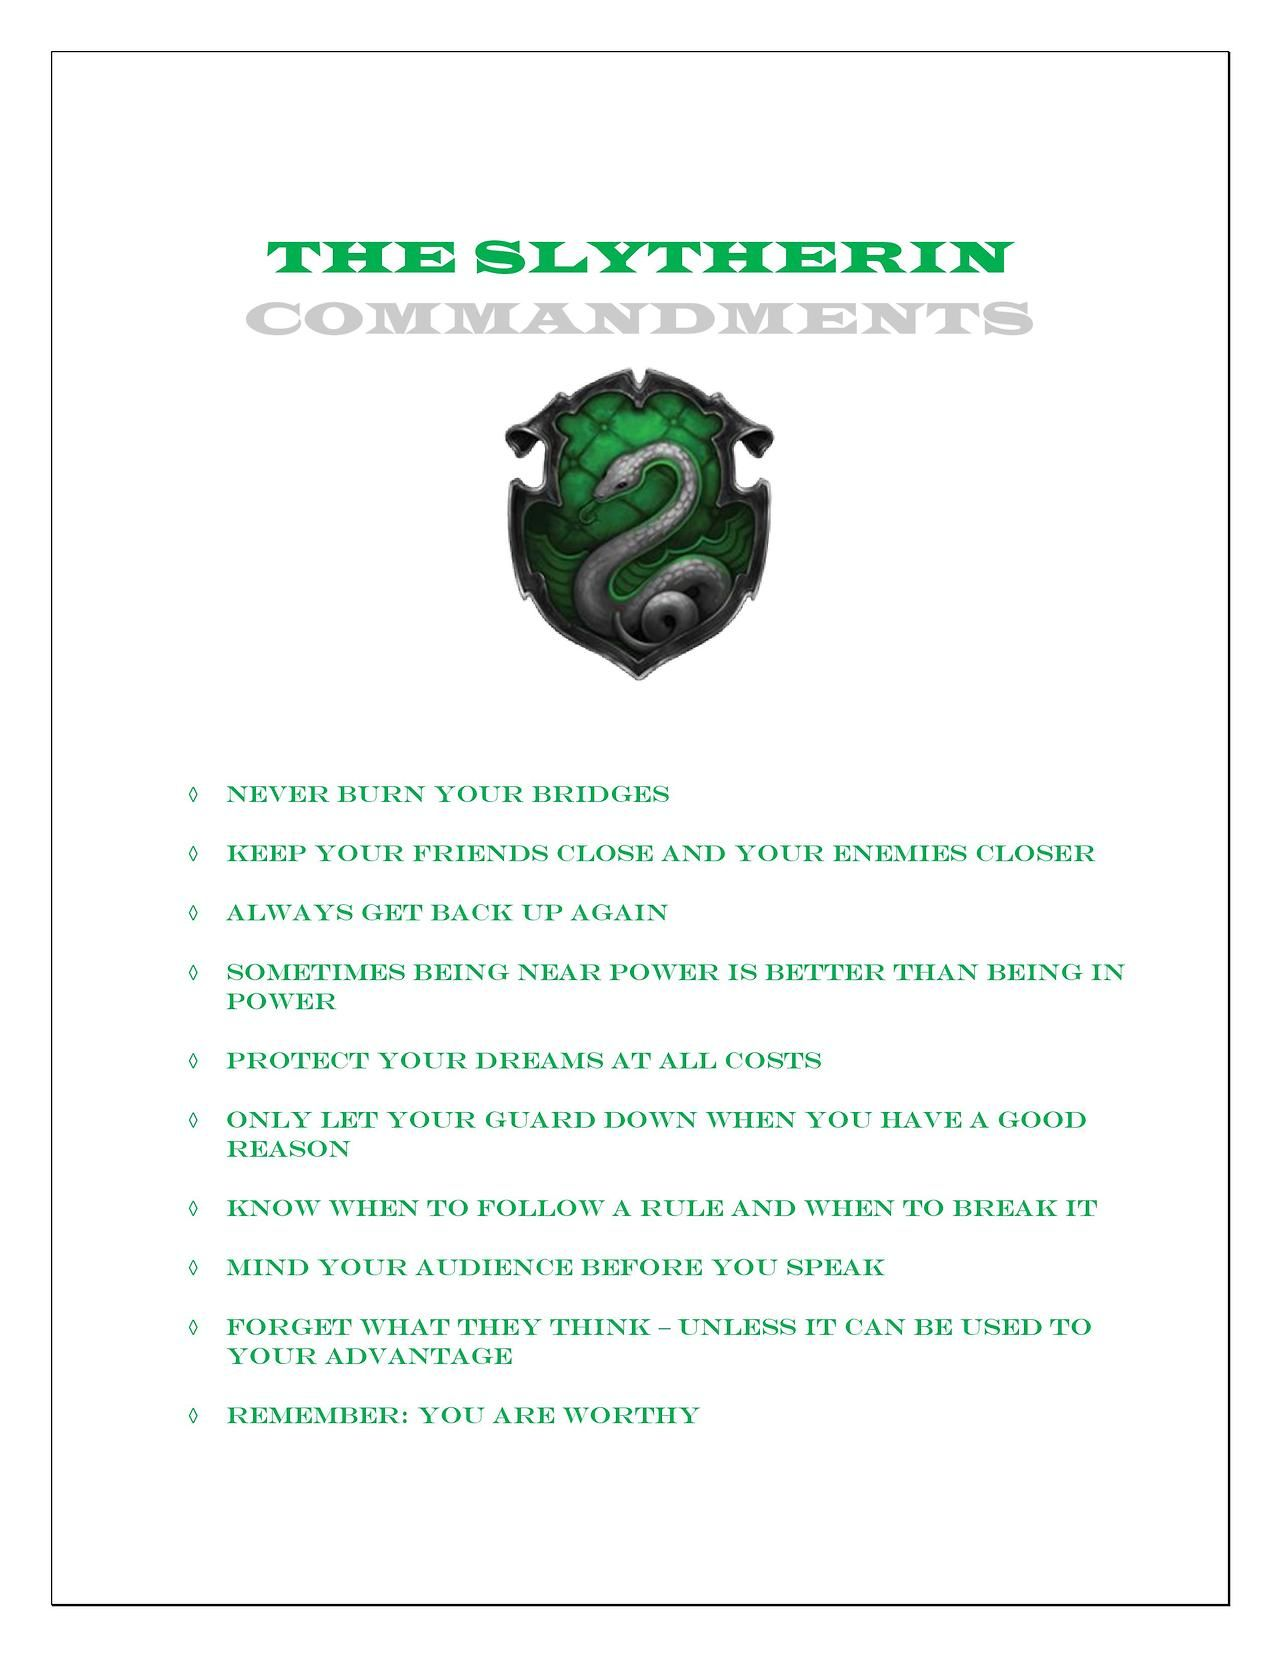 Slytherin Commandments It S Like All Of The Slytherins In The Books Completely Ignored These